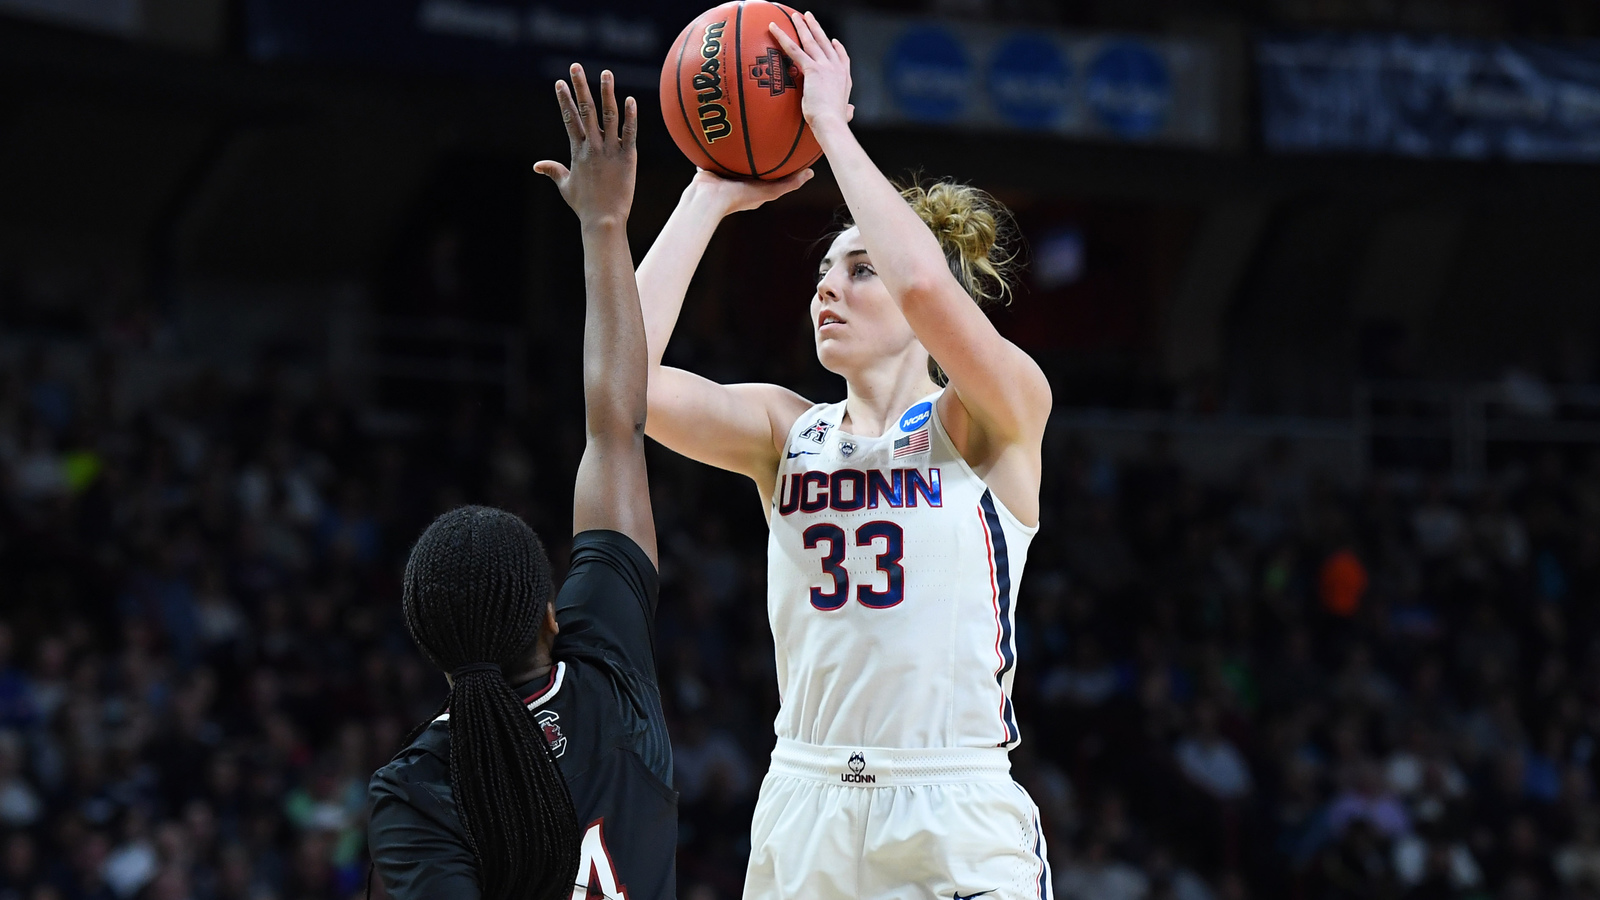 Notre Dame beats UConn, will face Mississippi State in NCAA Women's Championship